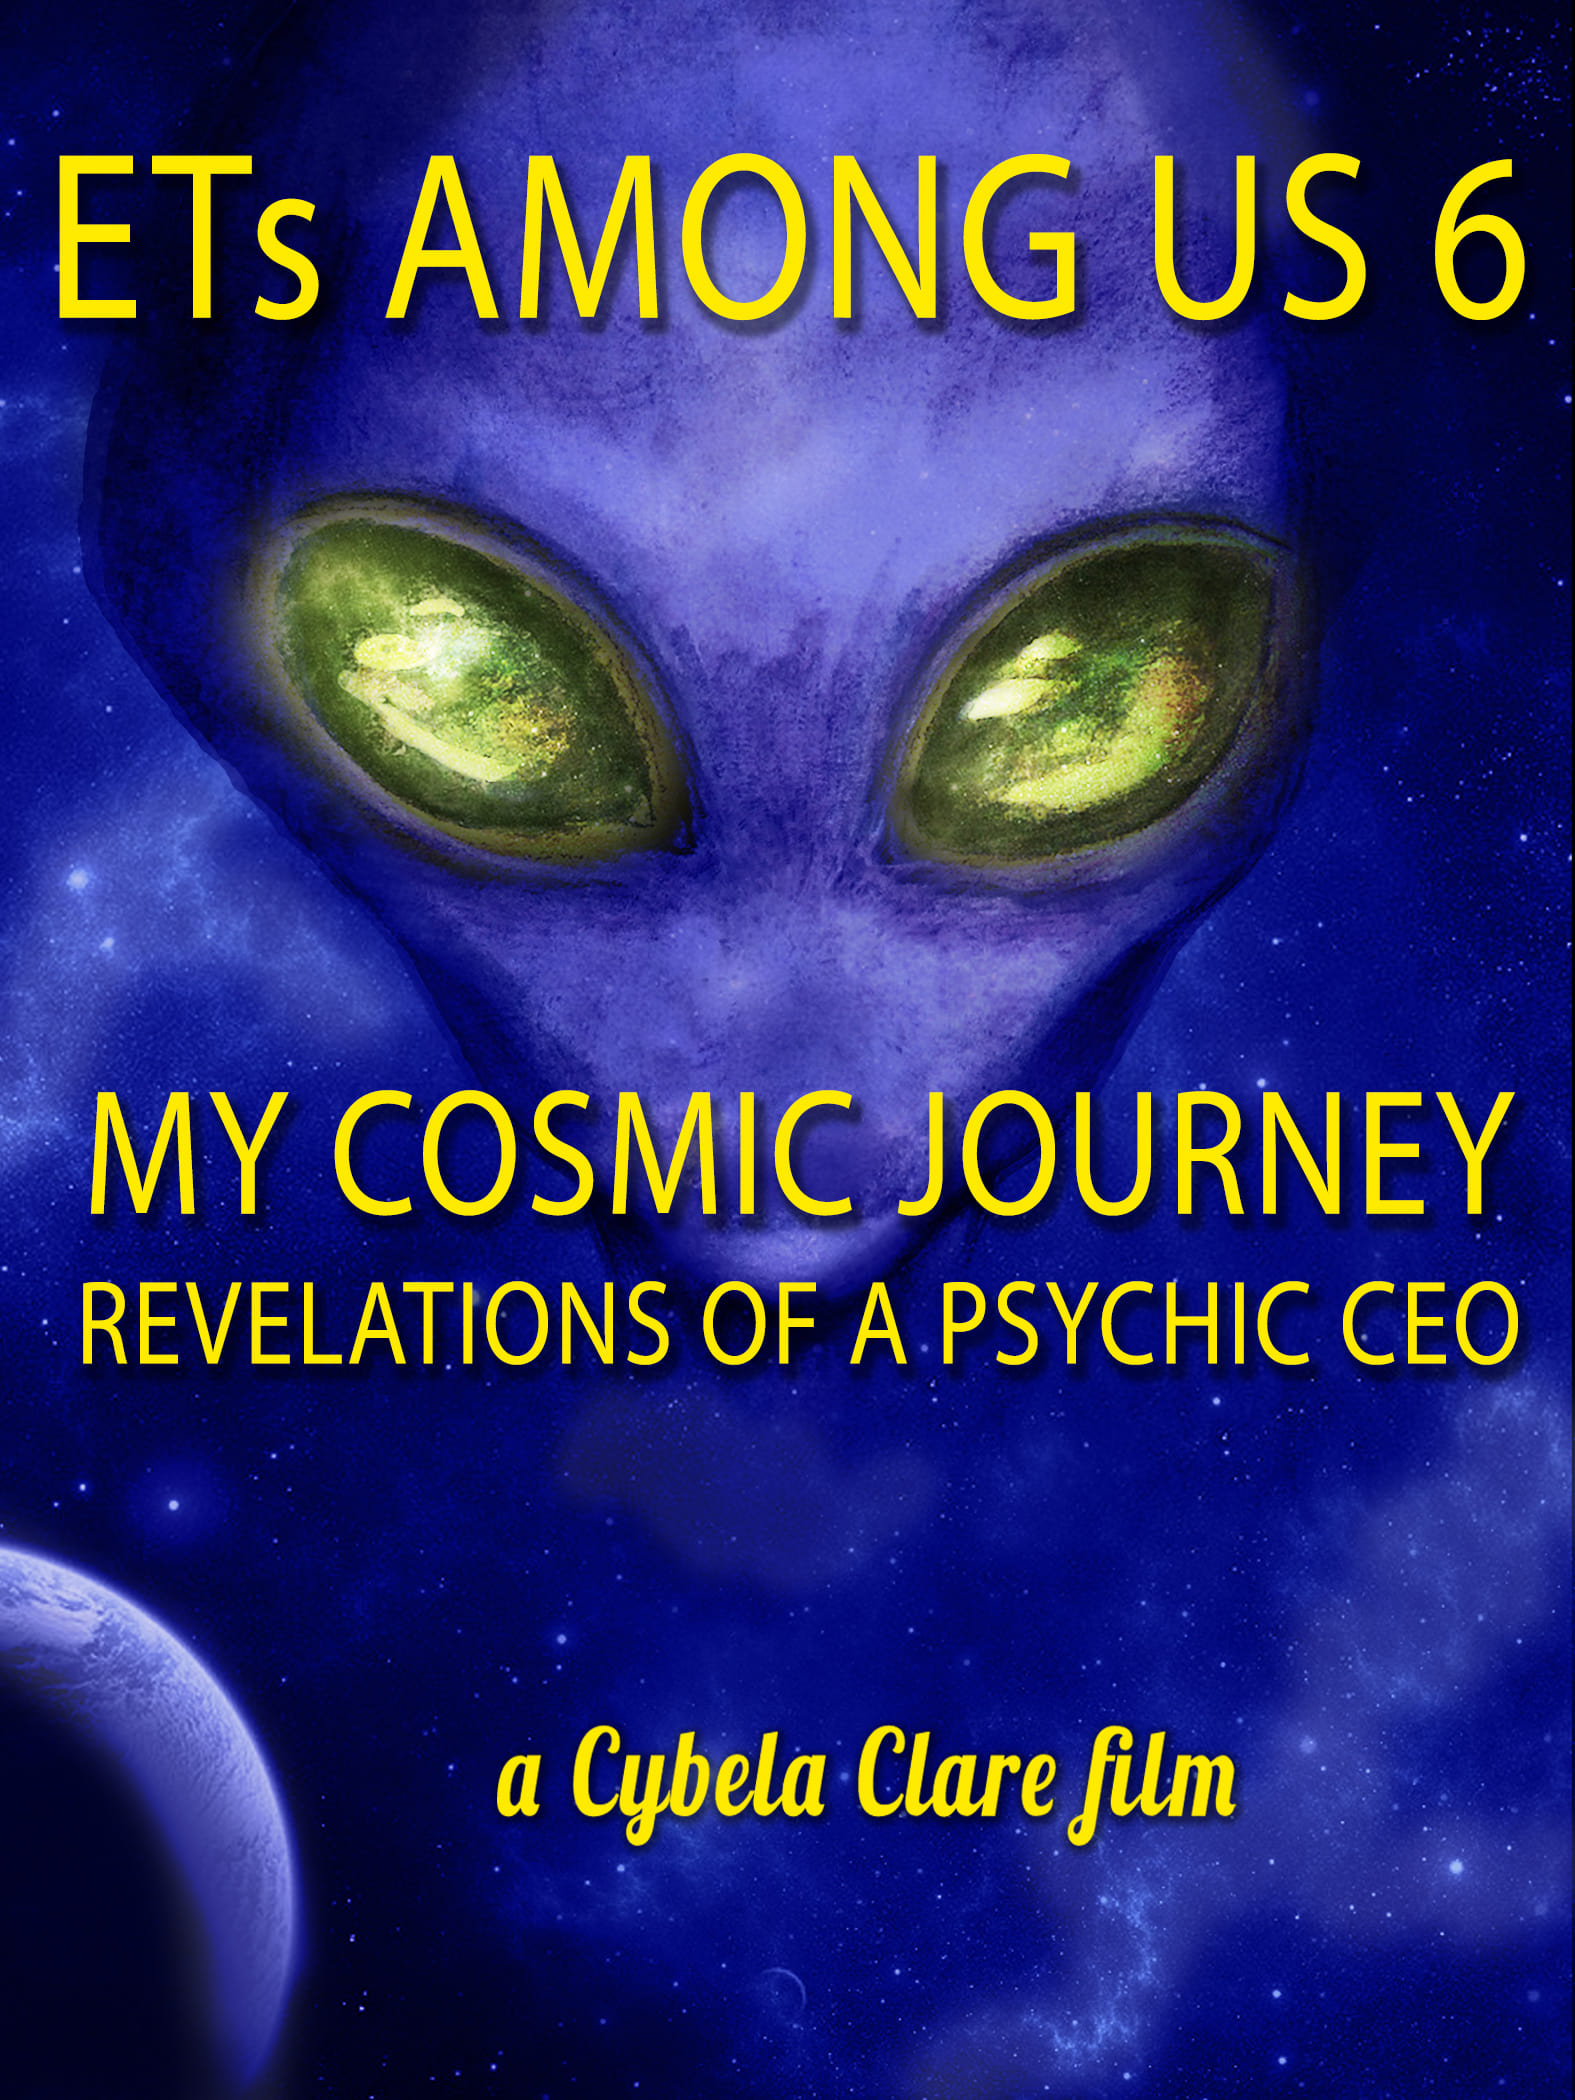 ETs Among Us 6: My Cosmic Journey - Revelations of a Psychic CEO on FREECABLE TV